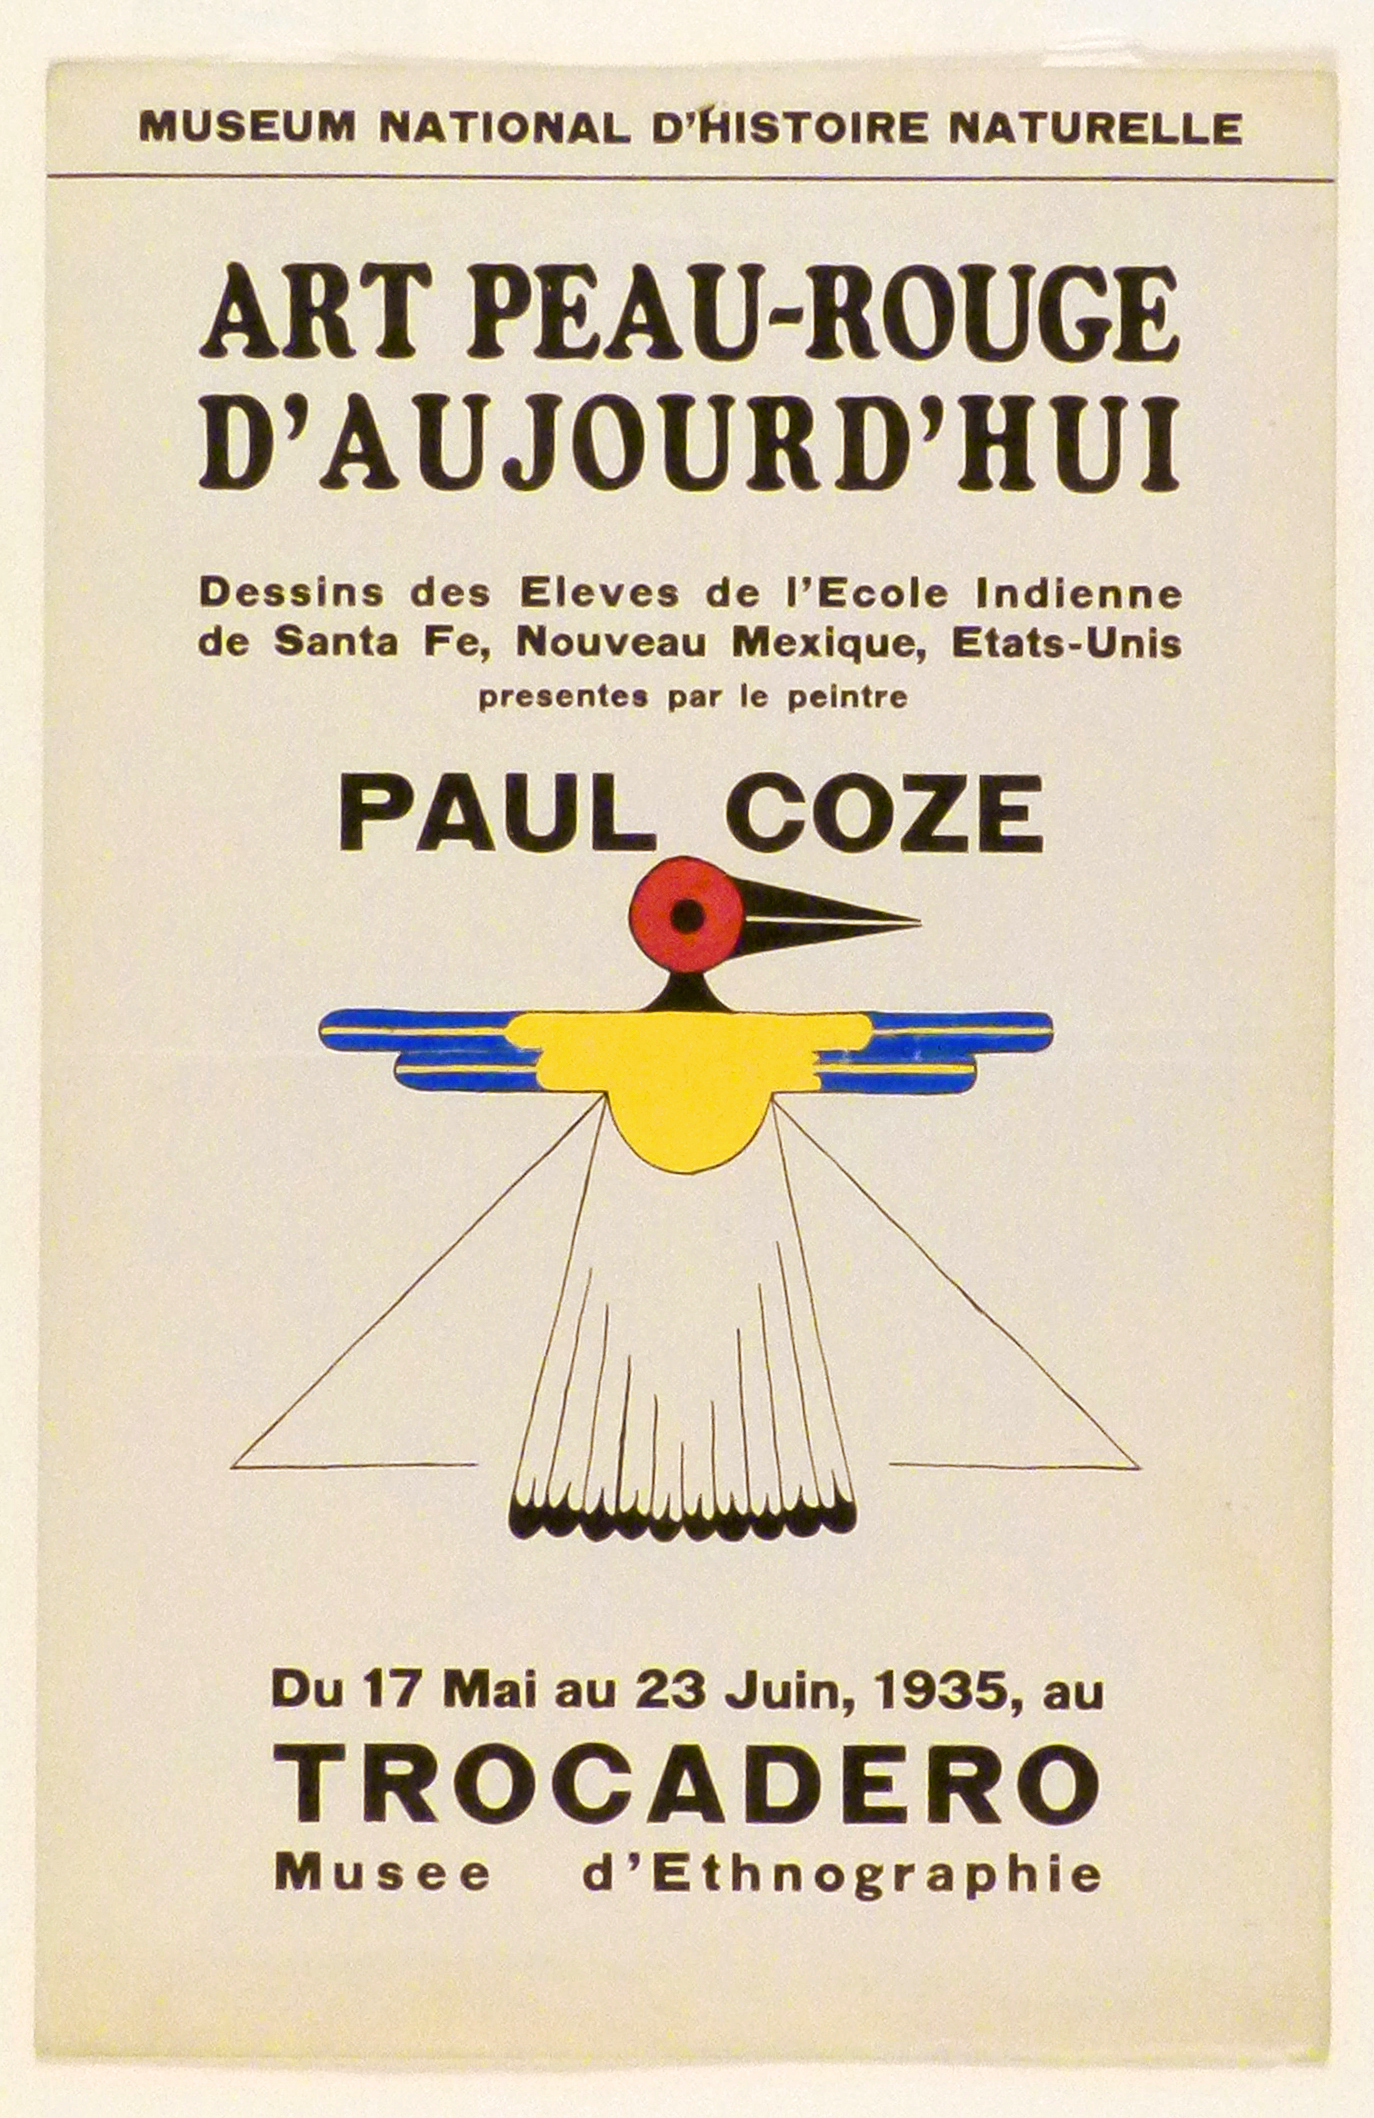 Art Exhibition Poster with painting of semi-representational bird in black, red, yellow, and blue, its head facing right.